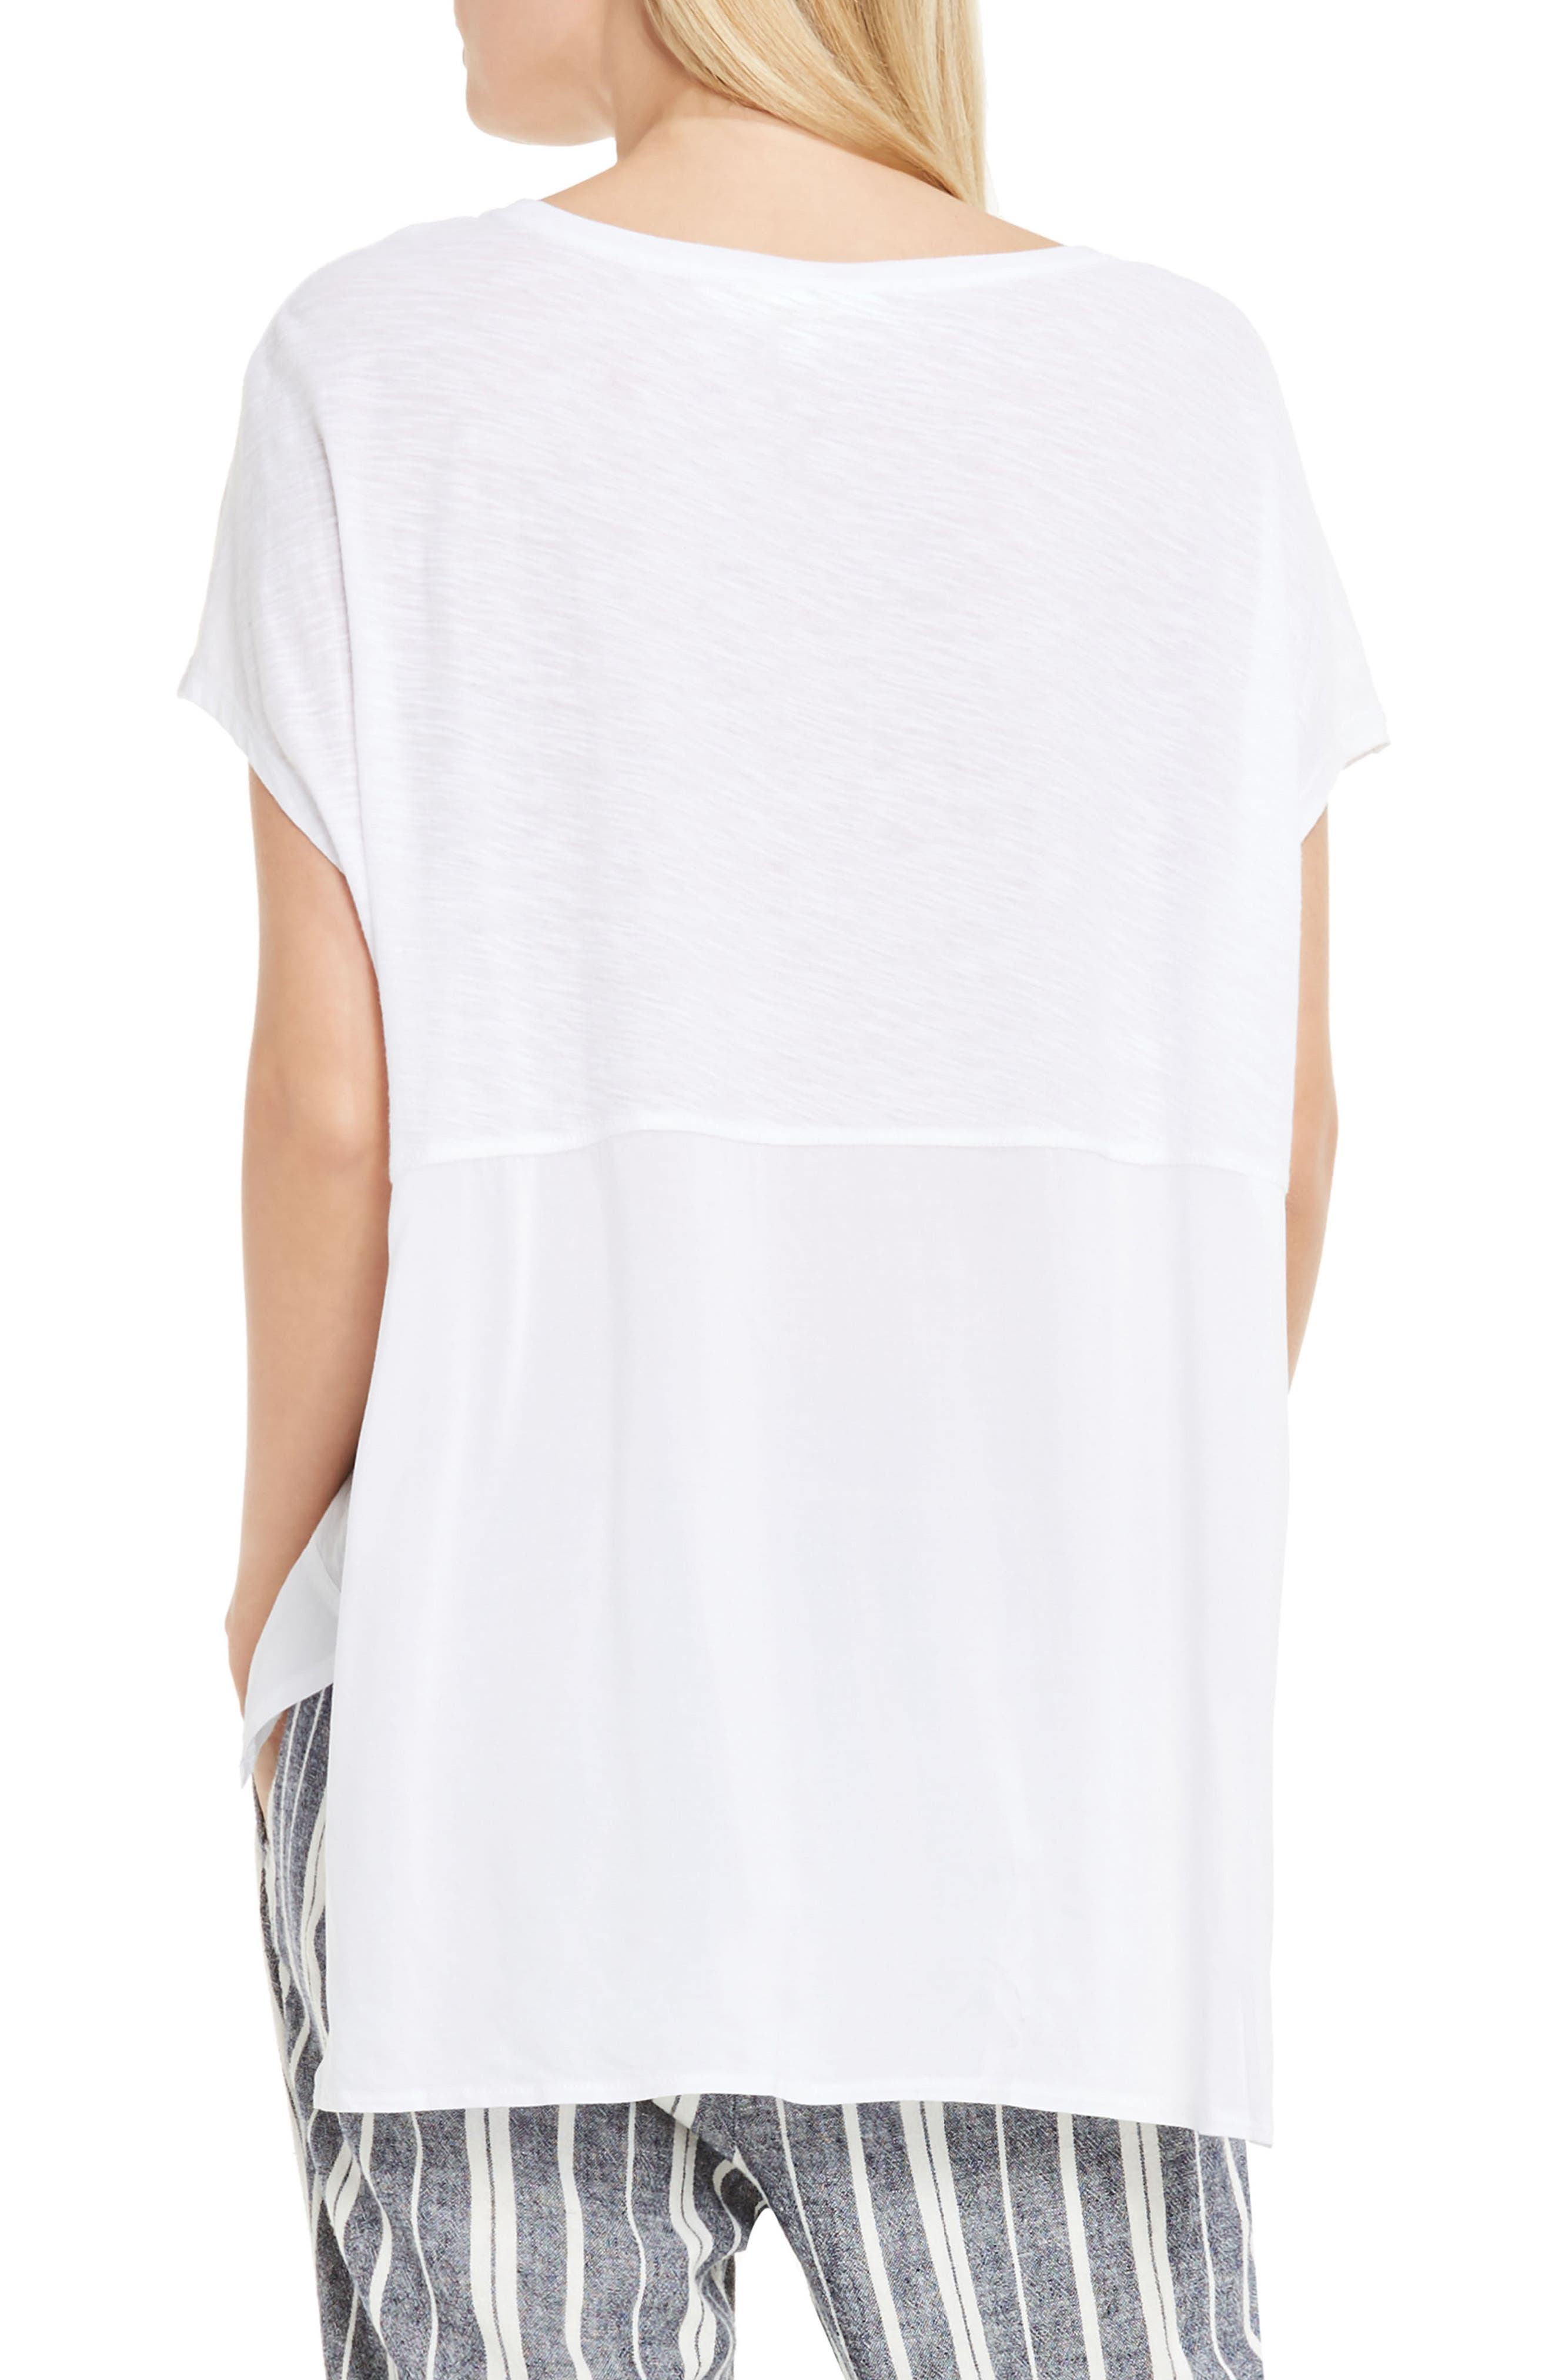 Alternate Image 2  - Two by Vince Camuto Chiffon High/Low Hem Knit Tee